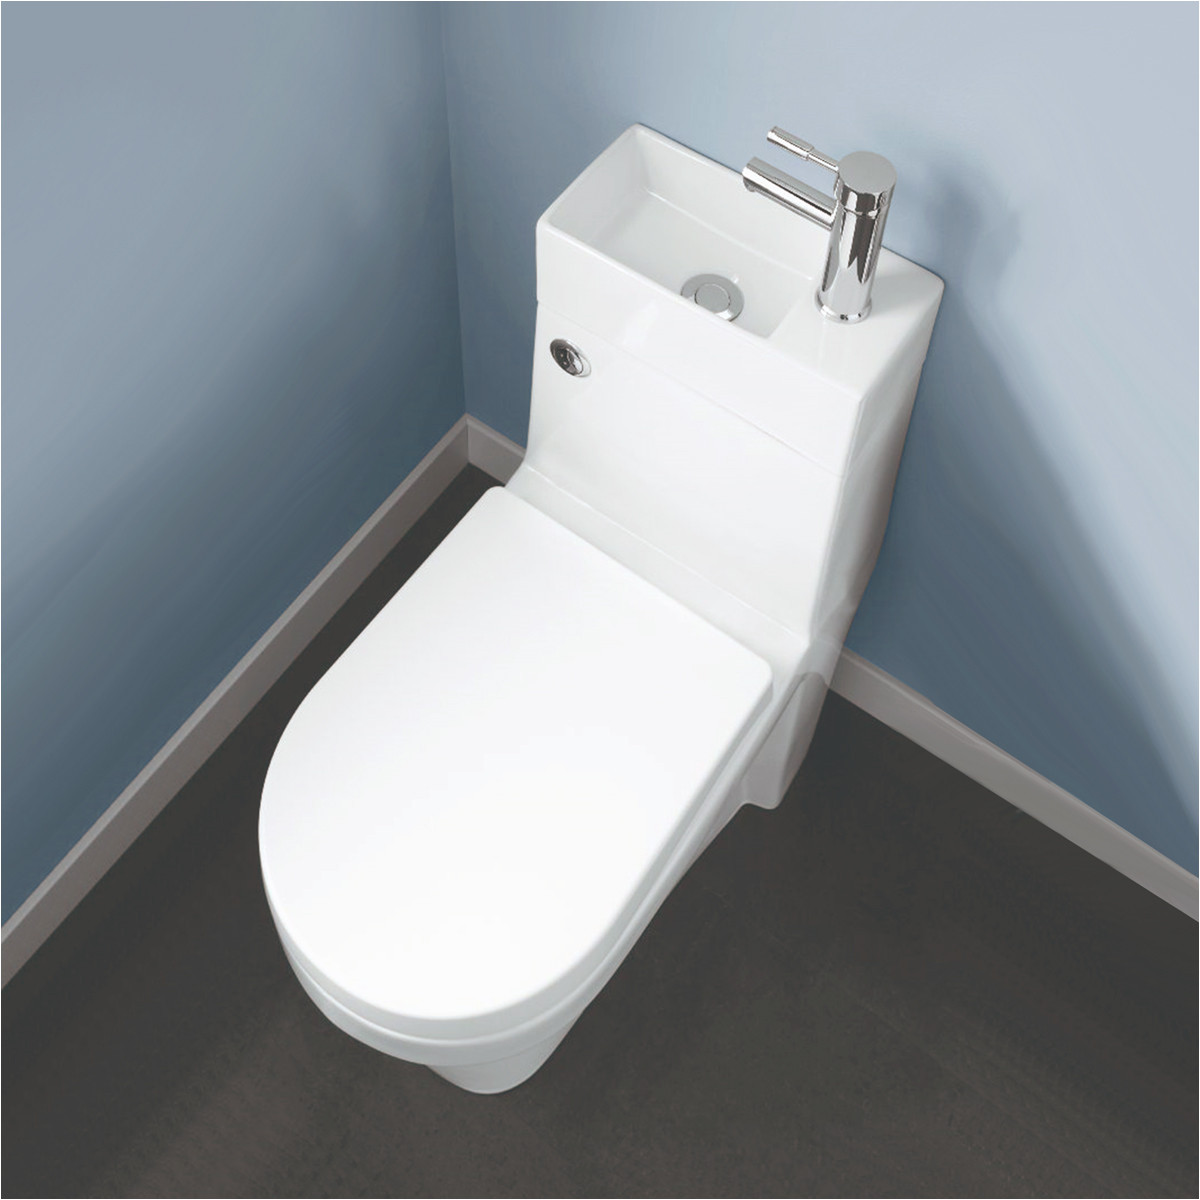 Toilet Sink Combo Units for Sale Ireland Combination Close Coupled toilet with Wash Basin Two In One Unit